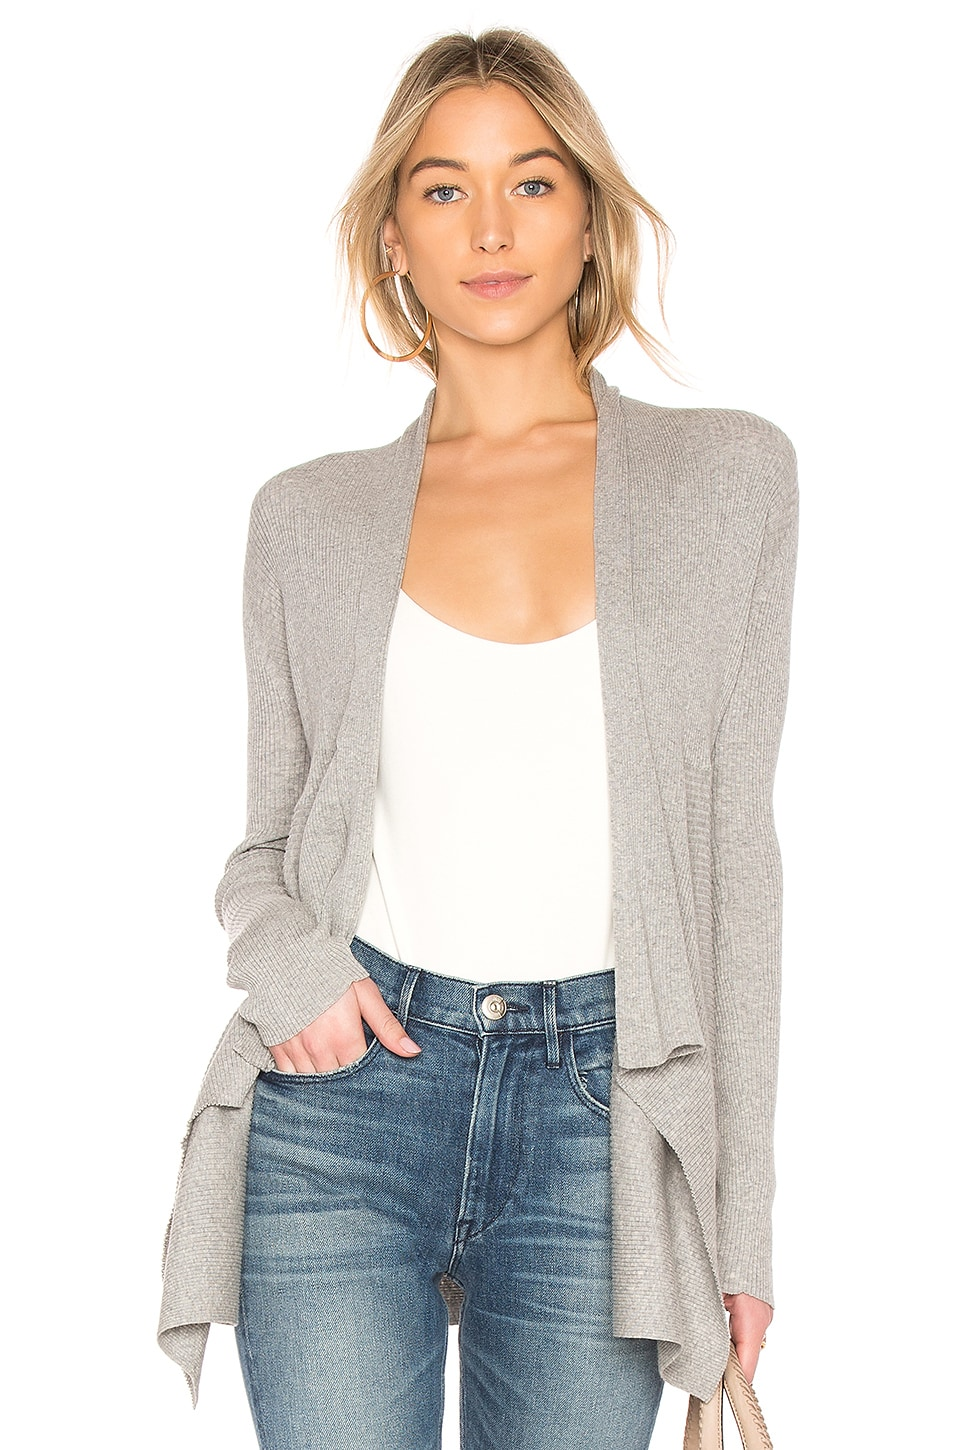 Autumn Cashmere Ribbed Drape Cardigan in Sweatshirt